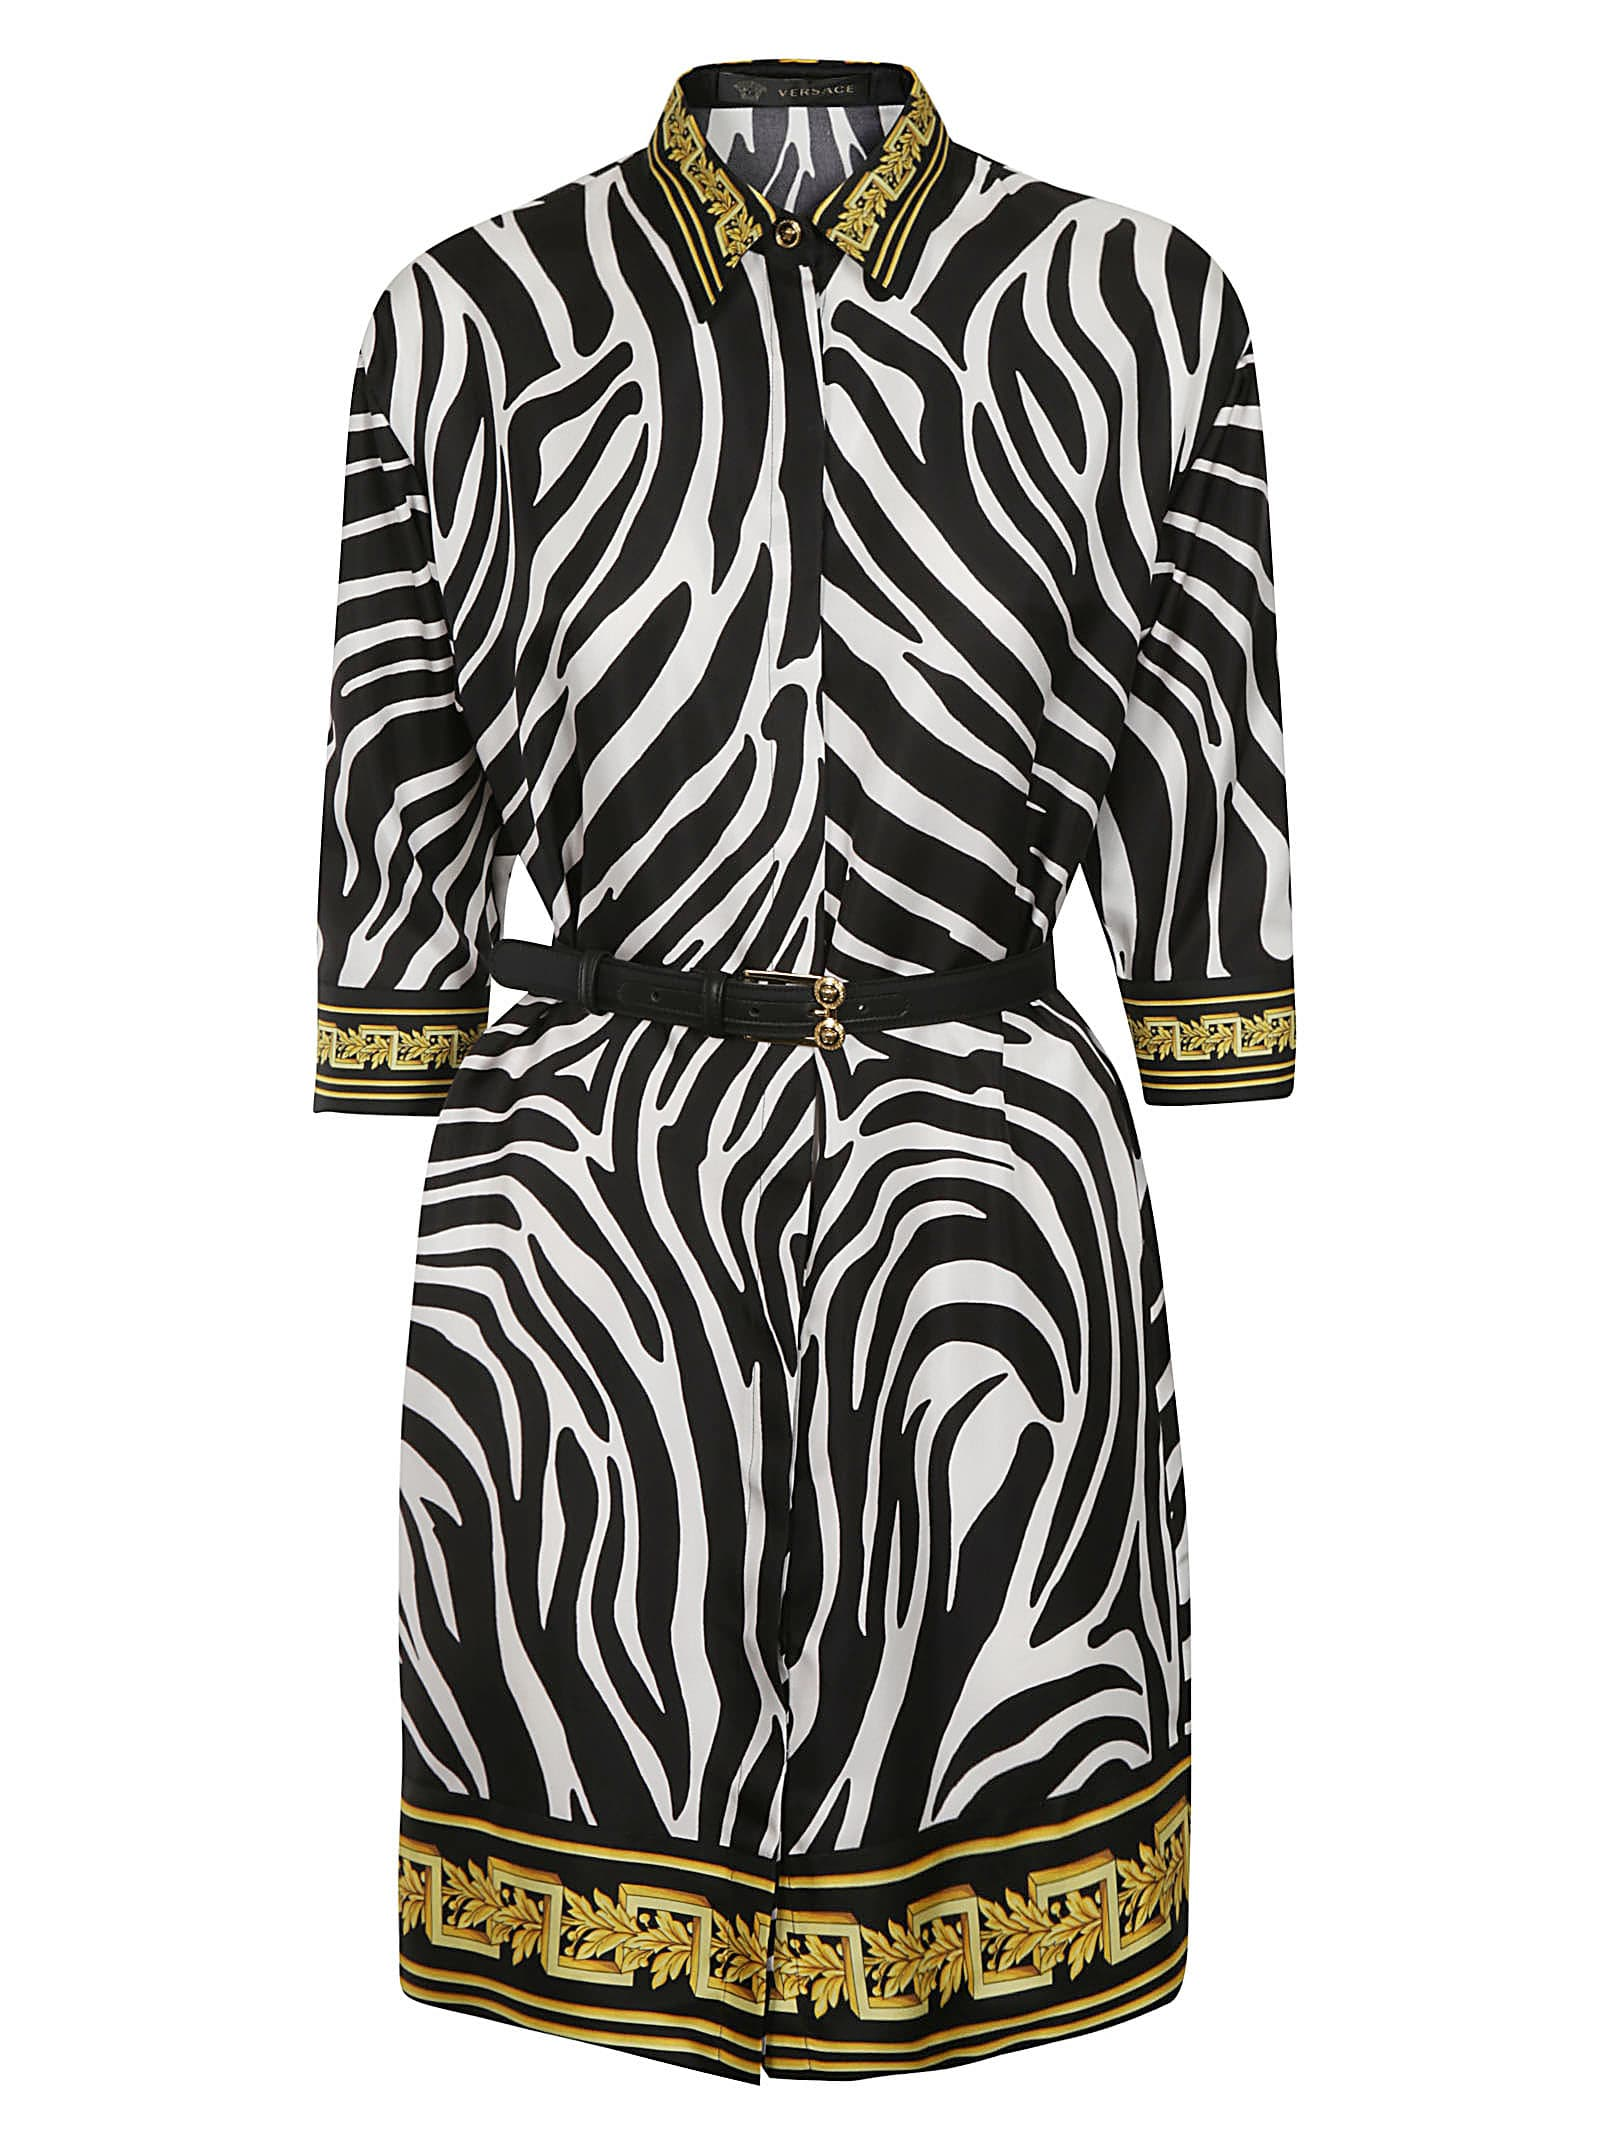 Versace Patterned Dress